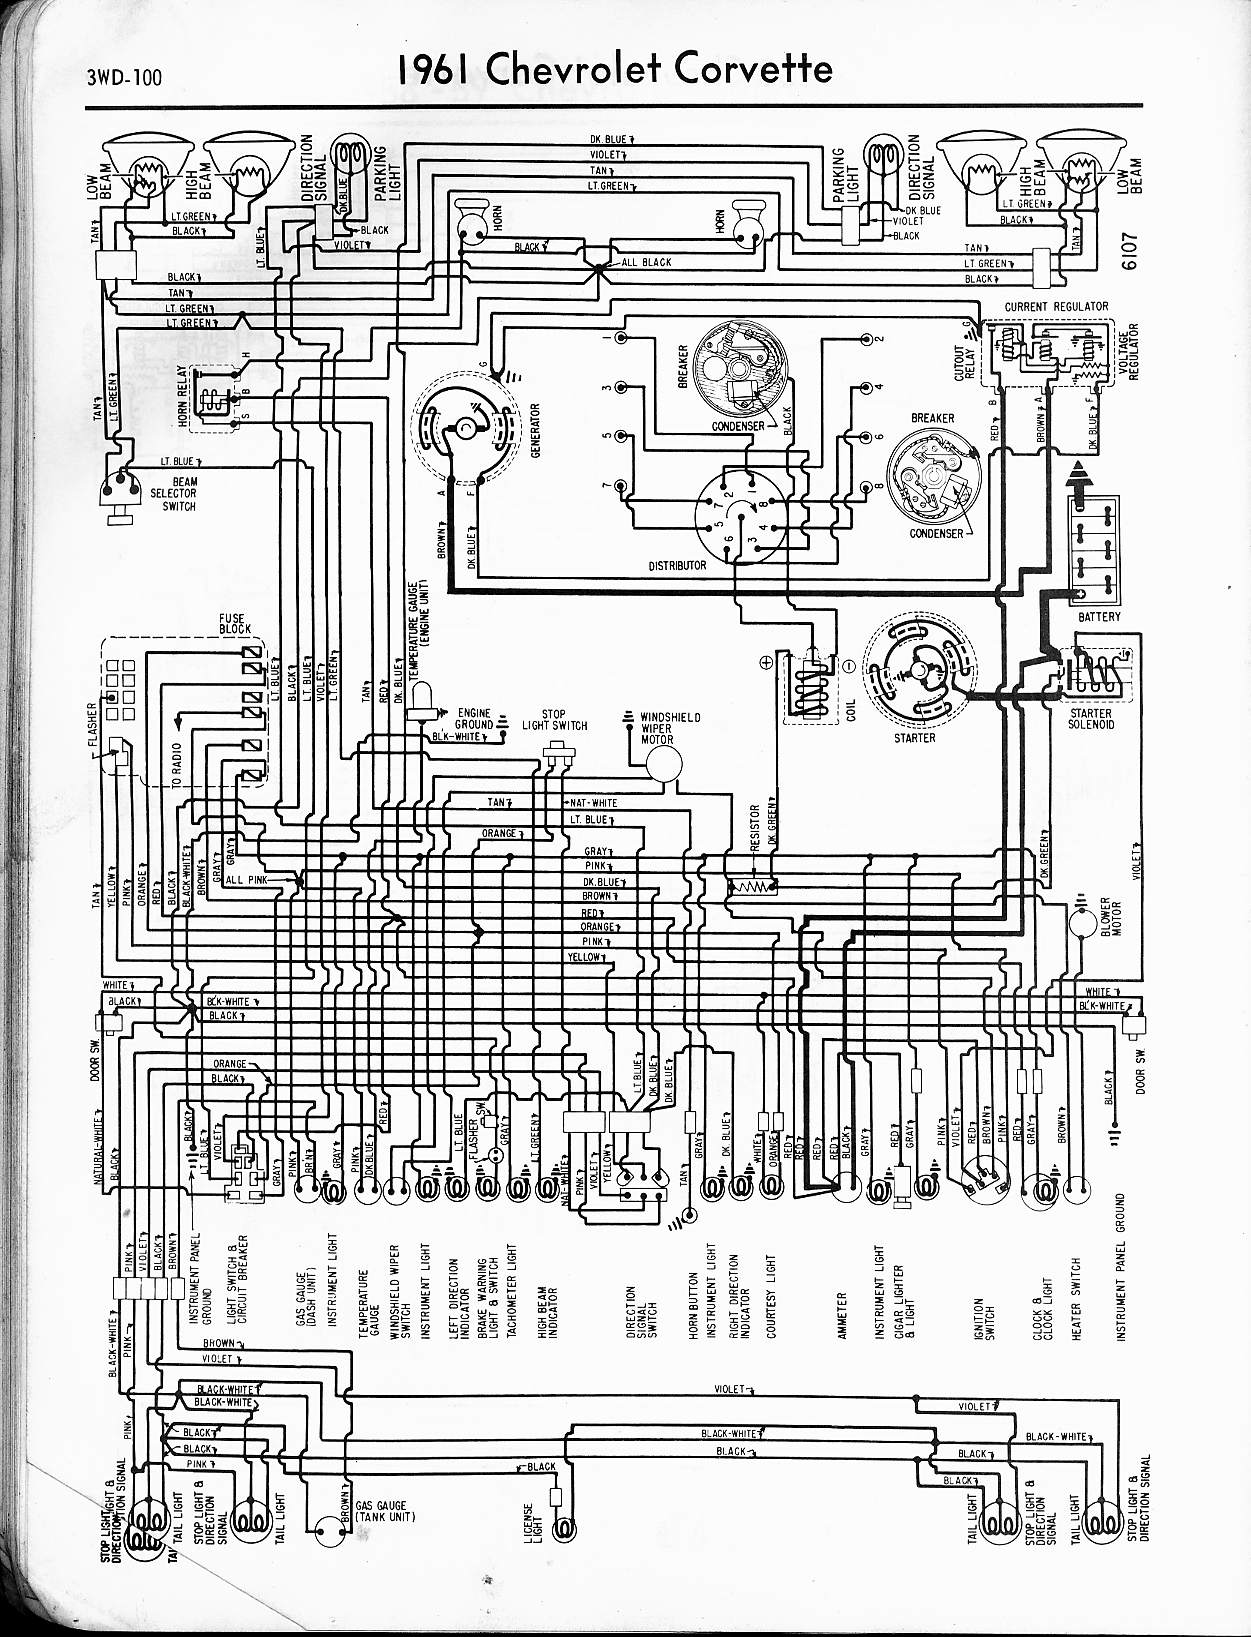 Corvette Wiring Diagram: 57 - 65 Chevy Wiring Diagrams,Design